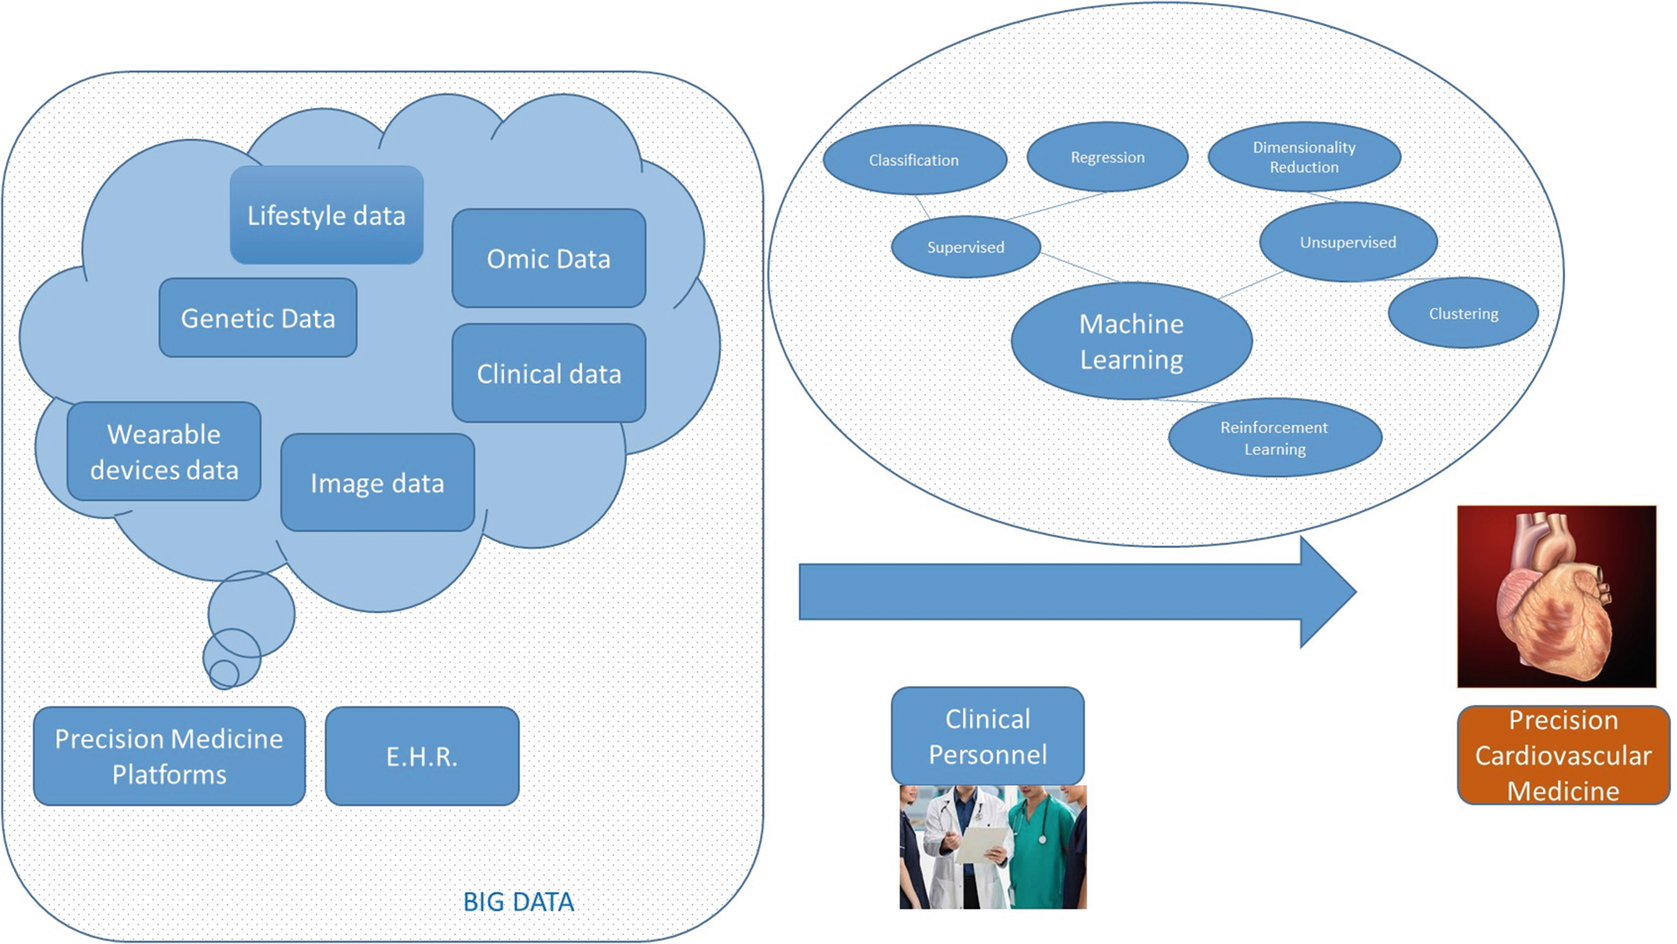 Big-Data Analysis, Cluster Analysis, and Machine-Learning Approaches ...